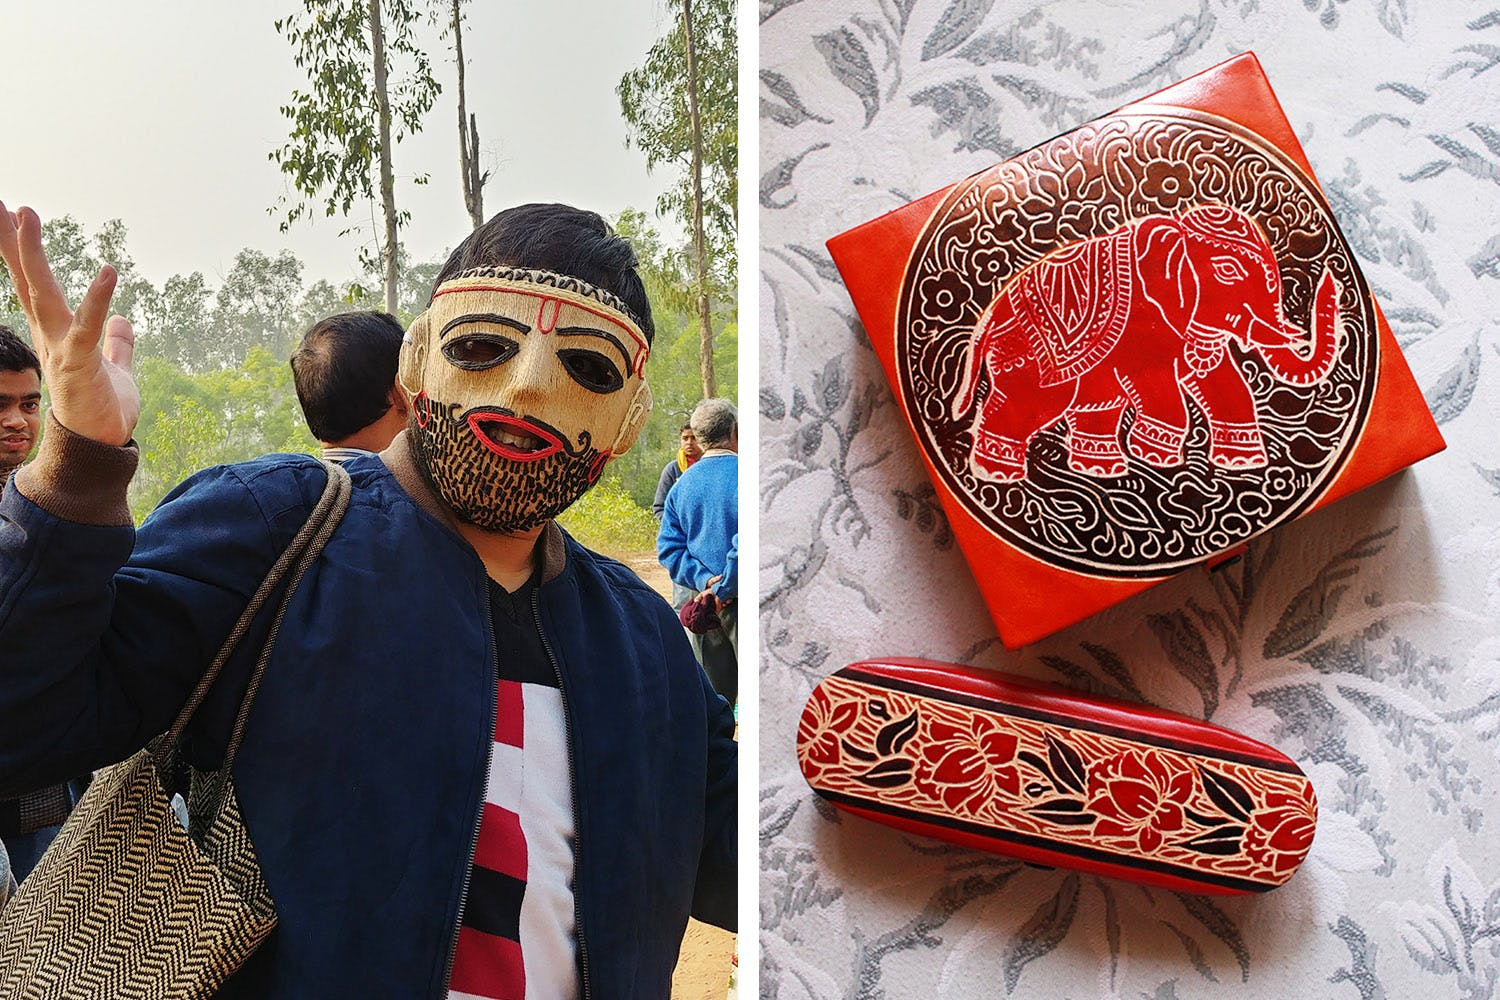 Red,Illustration,Tradition,Headgear,Glasses,Textile,Mask,Art,Costume,Style